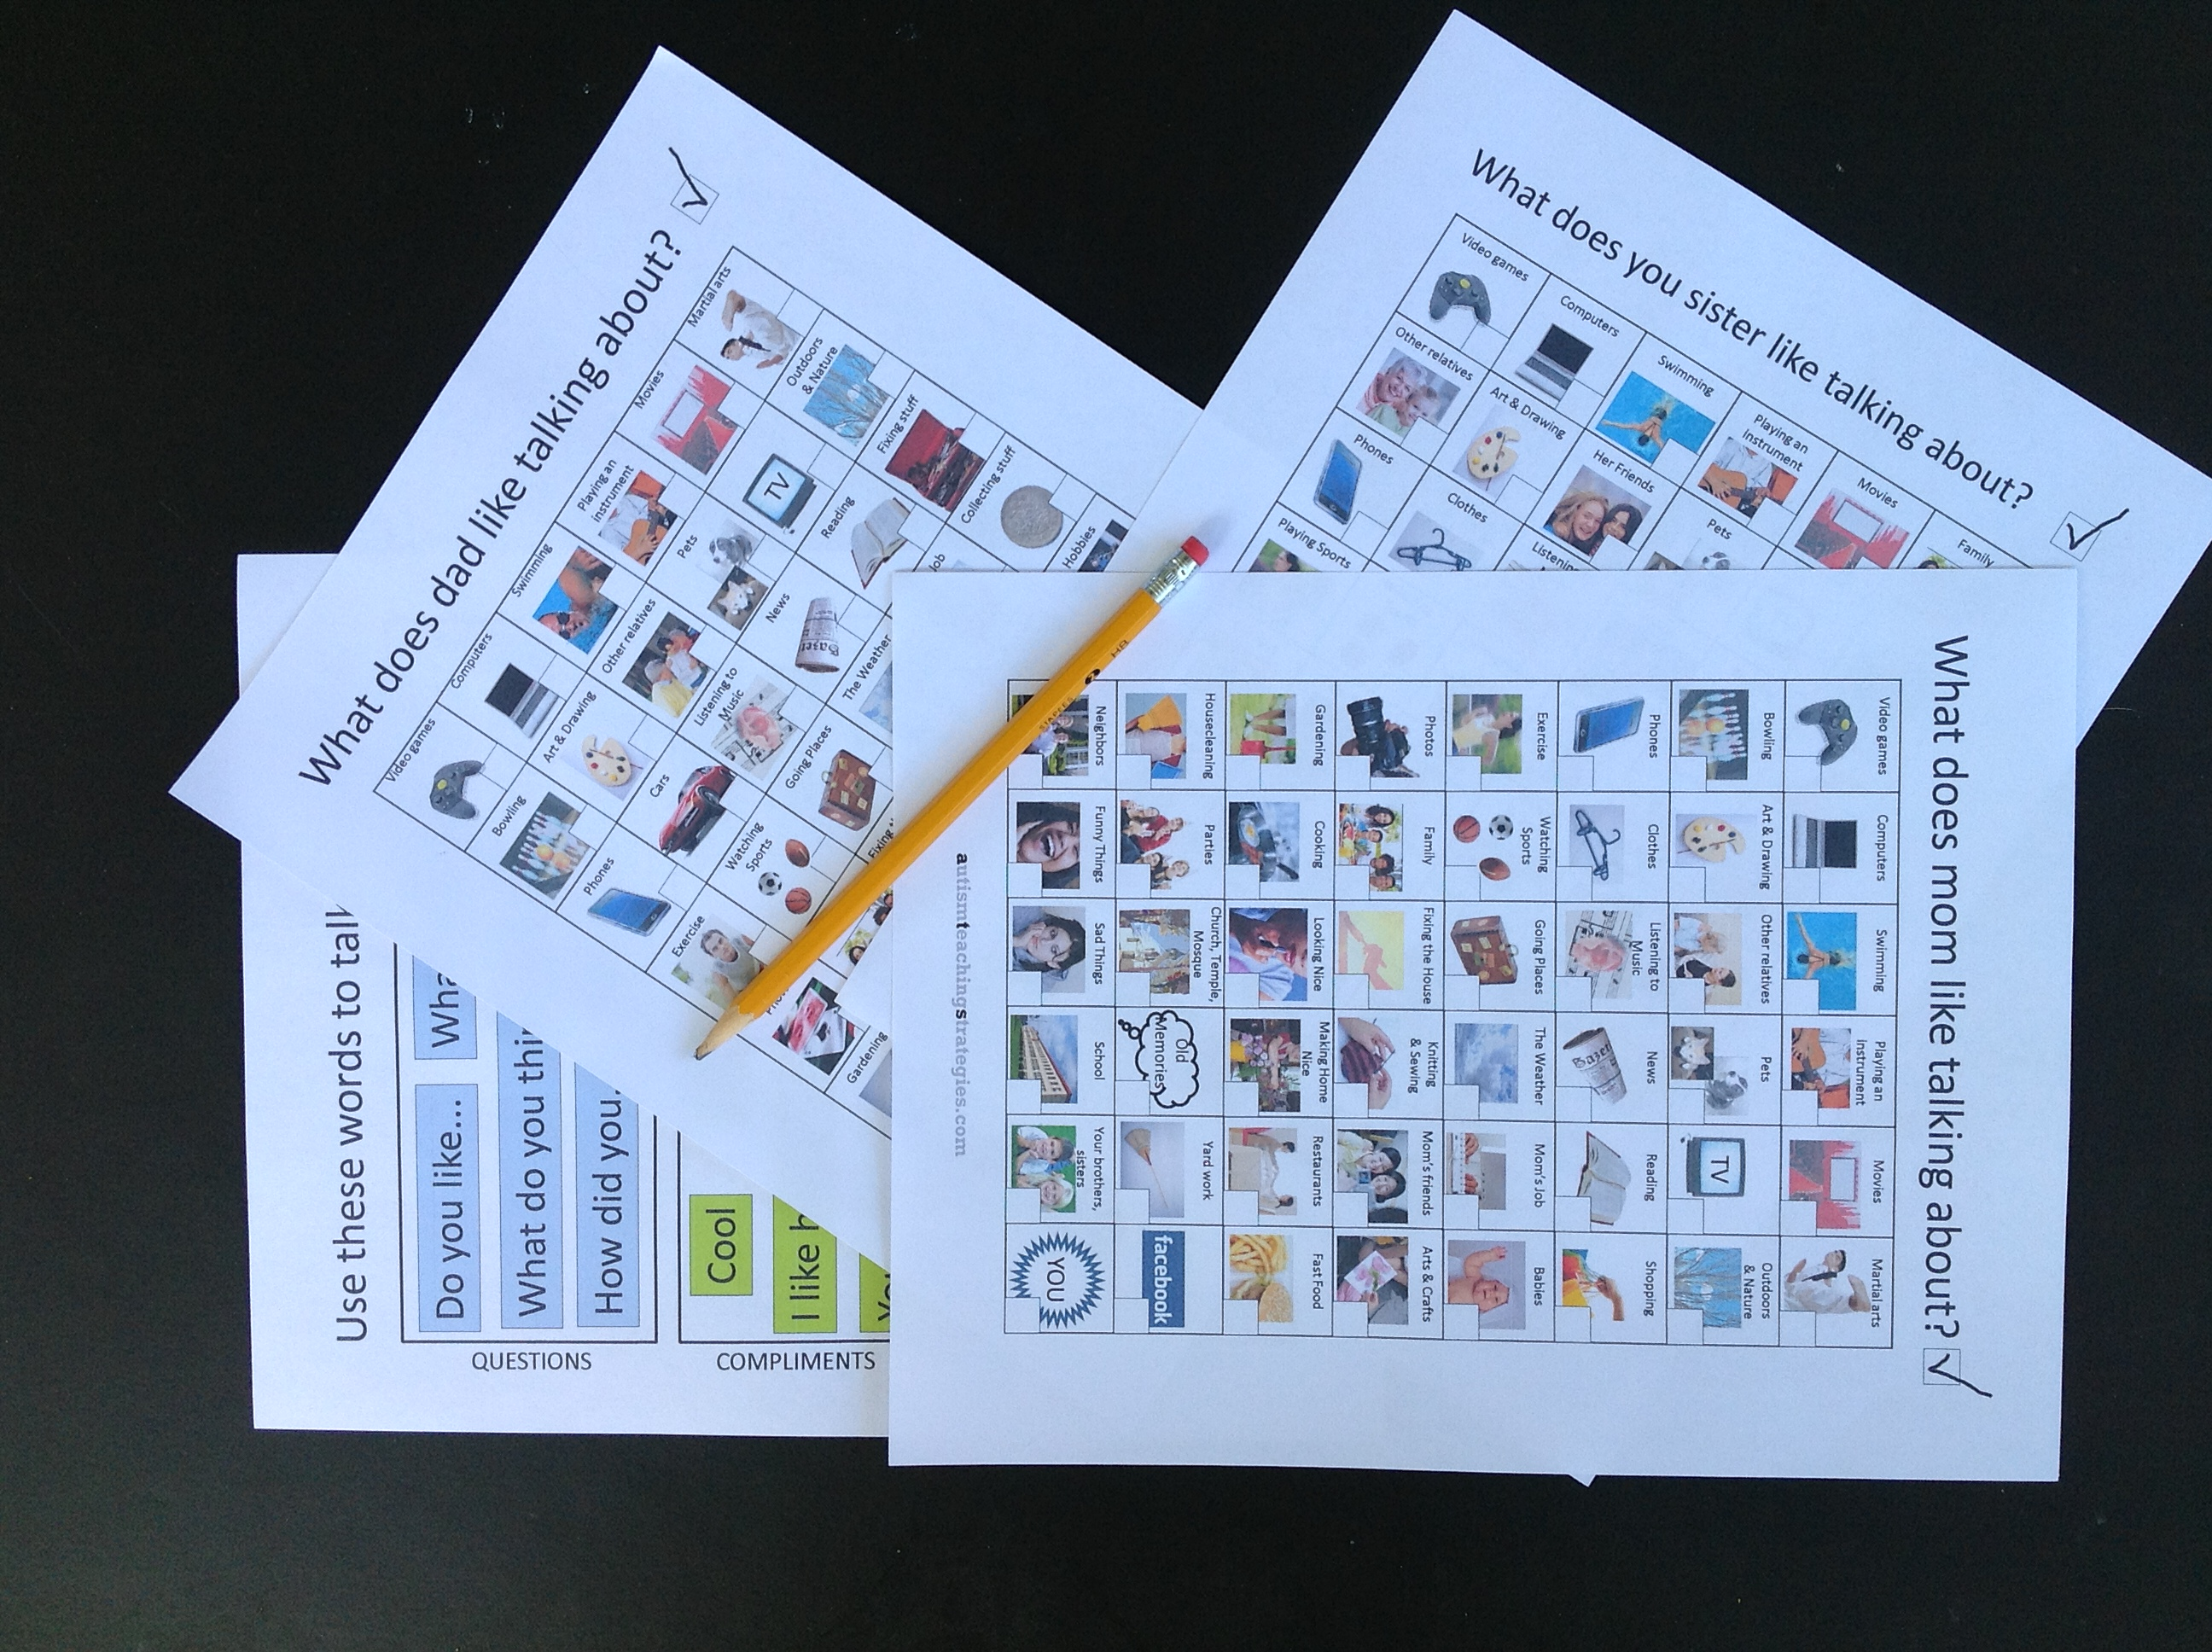 Talk To Dad Conversation Starter Worksheets For Kids With Asperger S And Other Autism Disorders